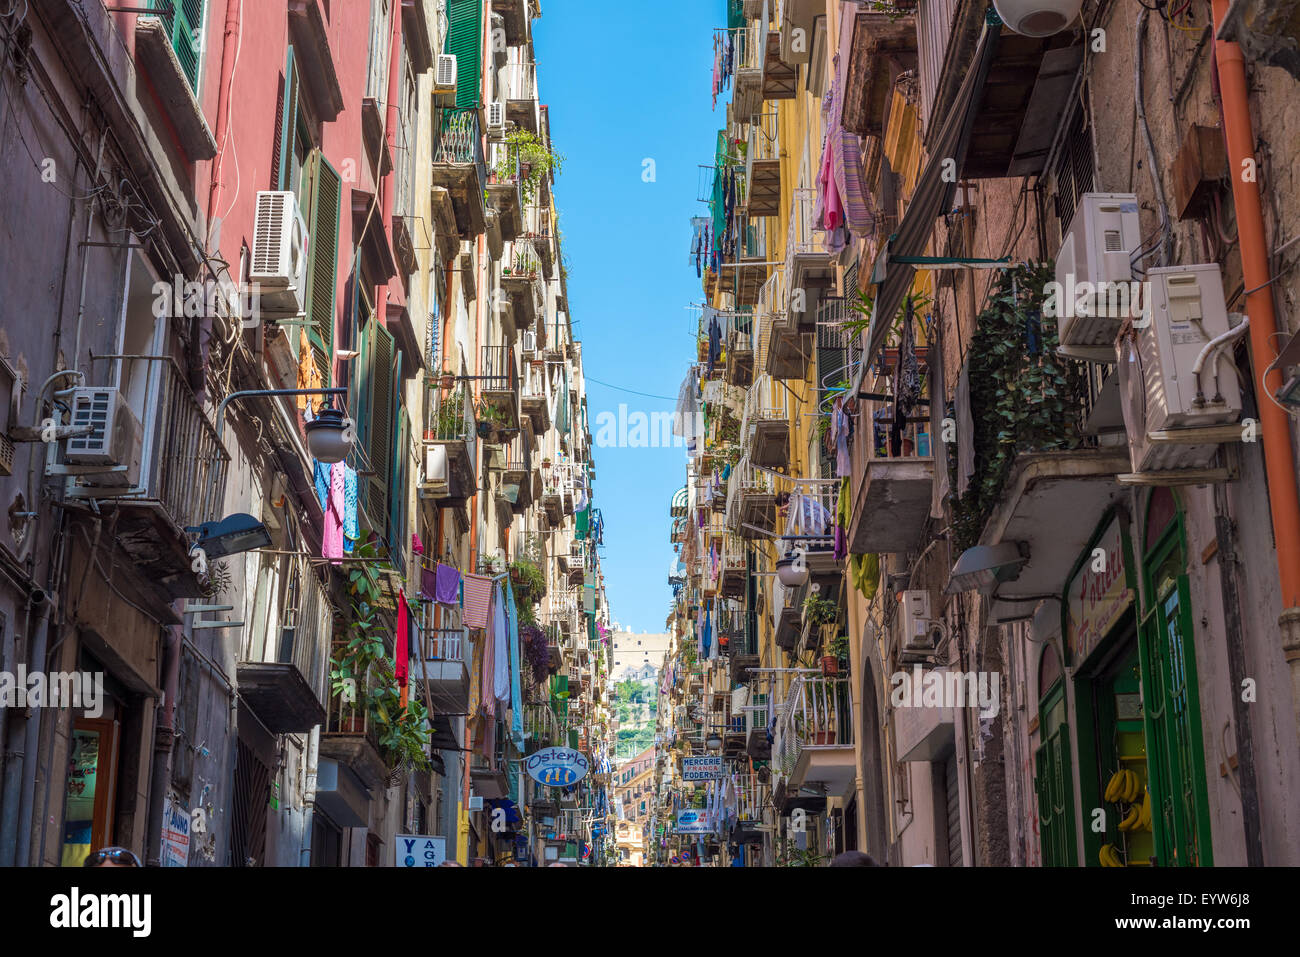 Colorful streets of Naples, Italy - Stock Image